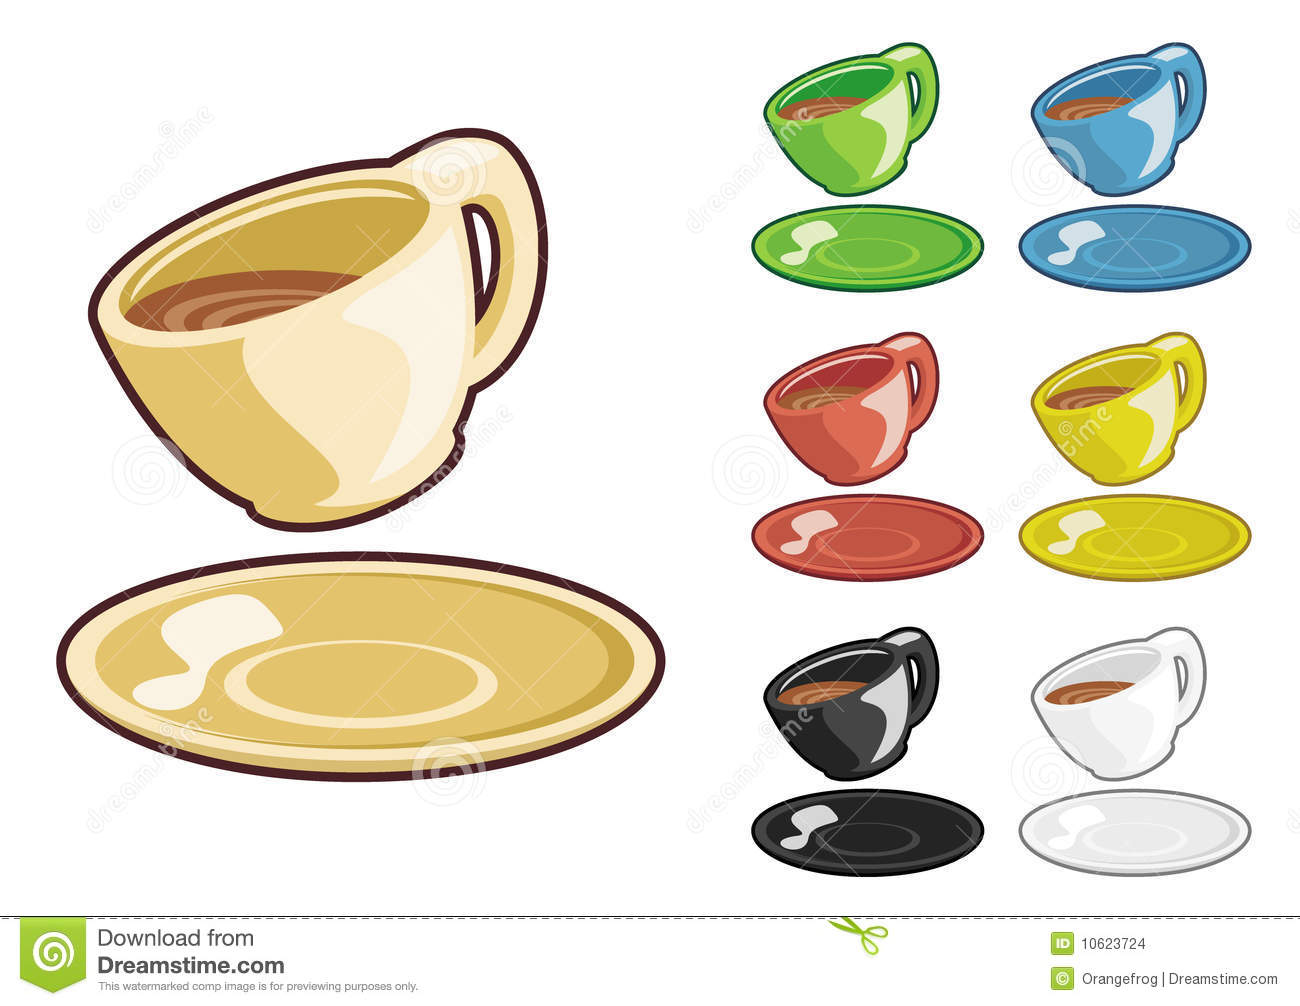 Cartoon tea cup with plate in different color variations.